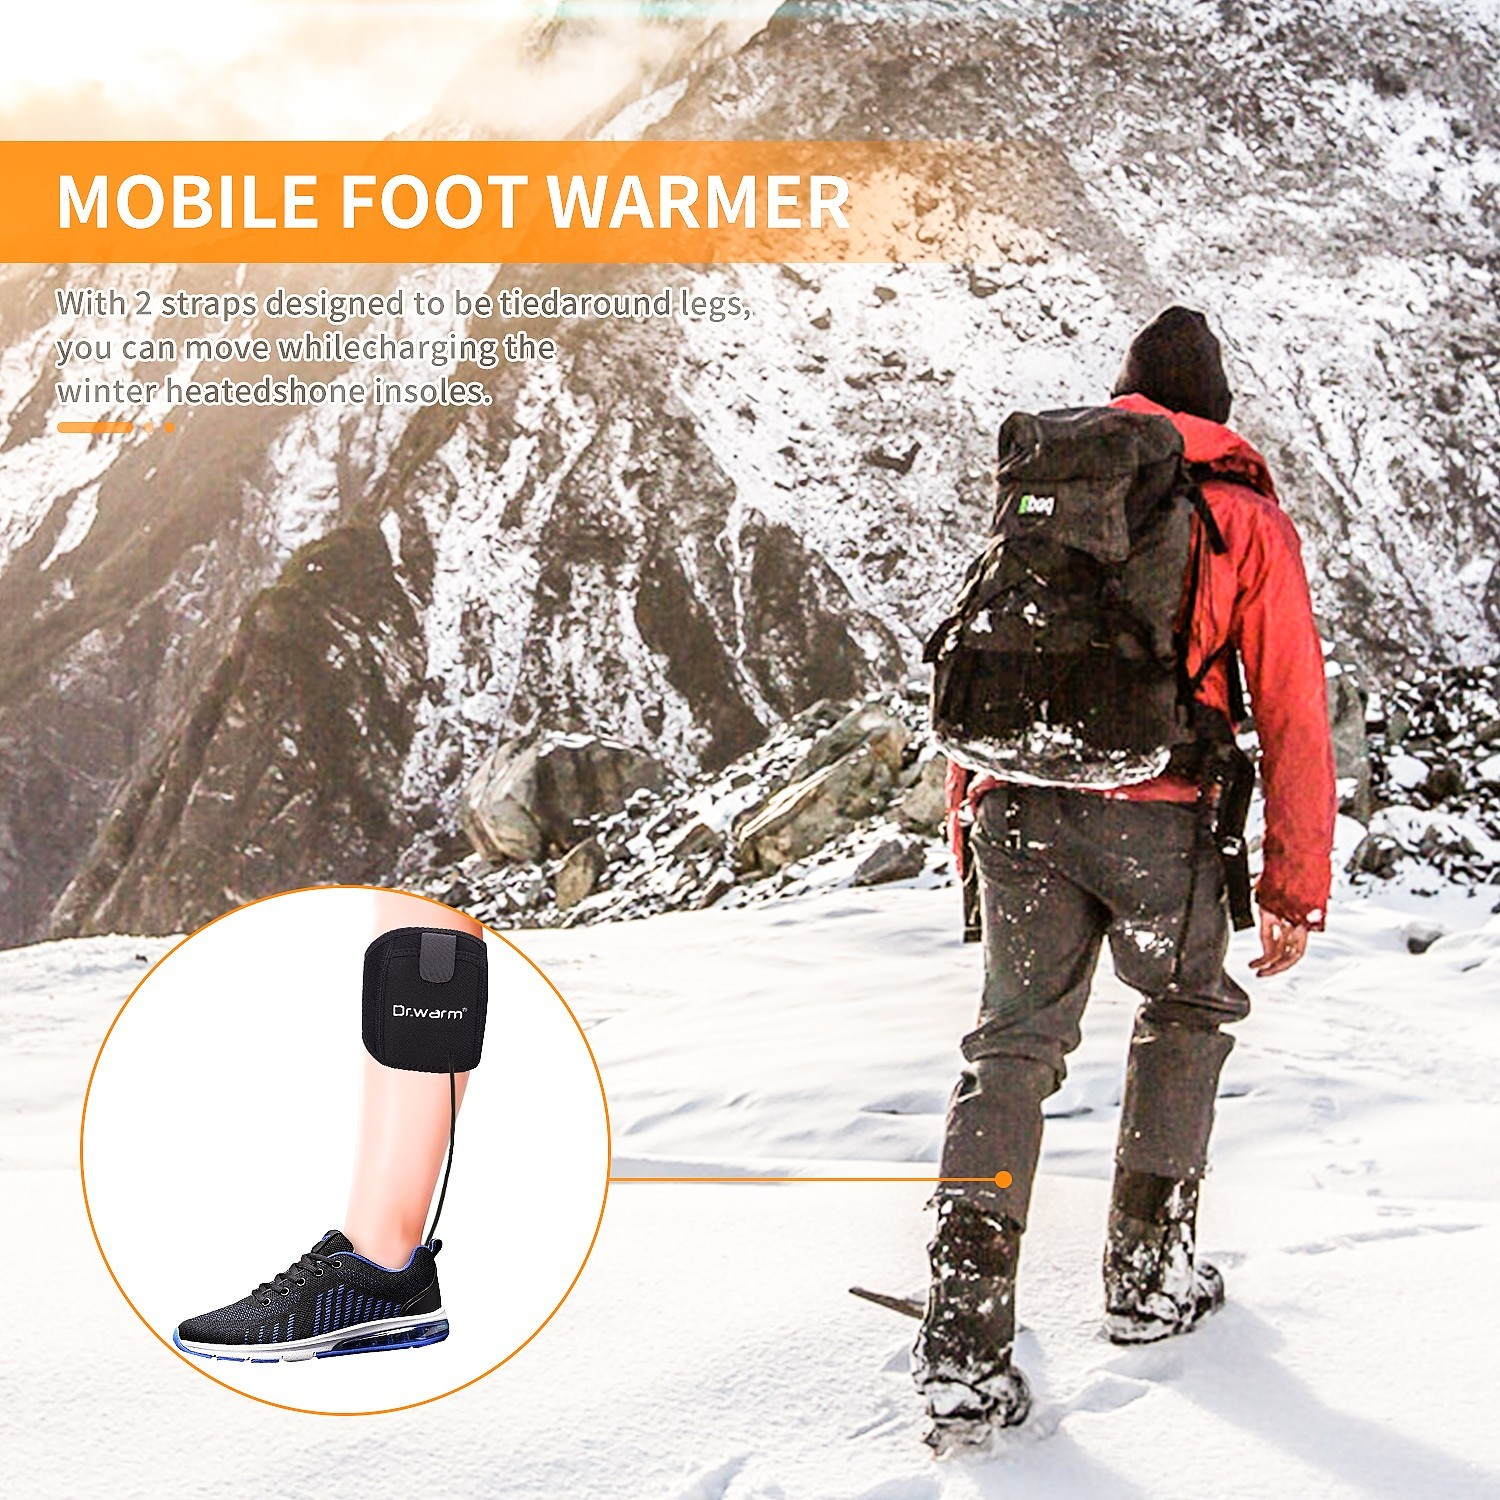 Dr. Warm battery heated insoles